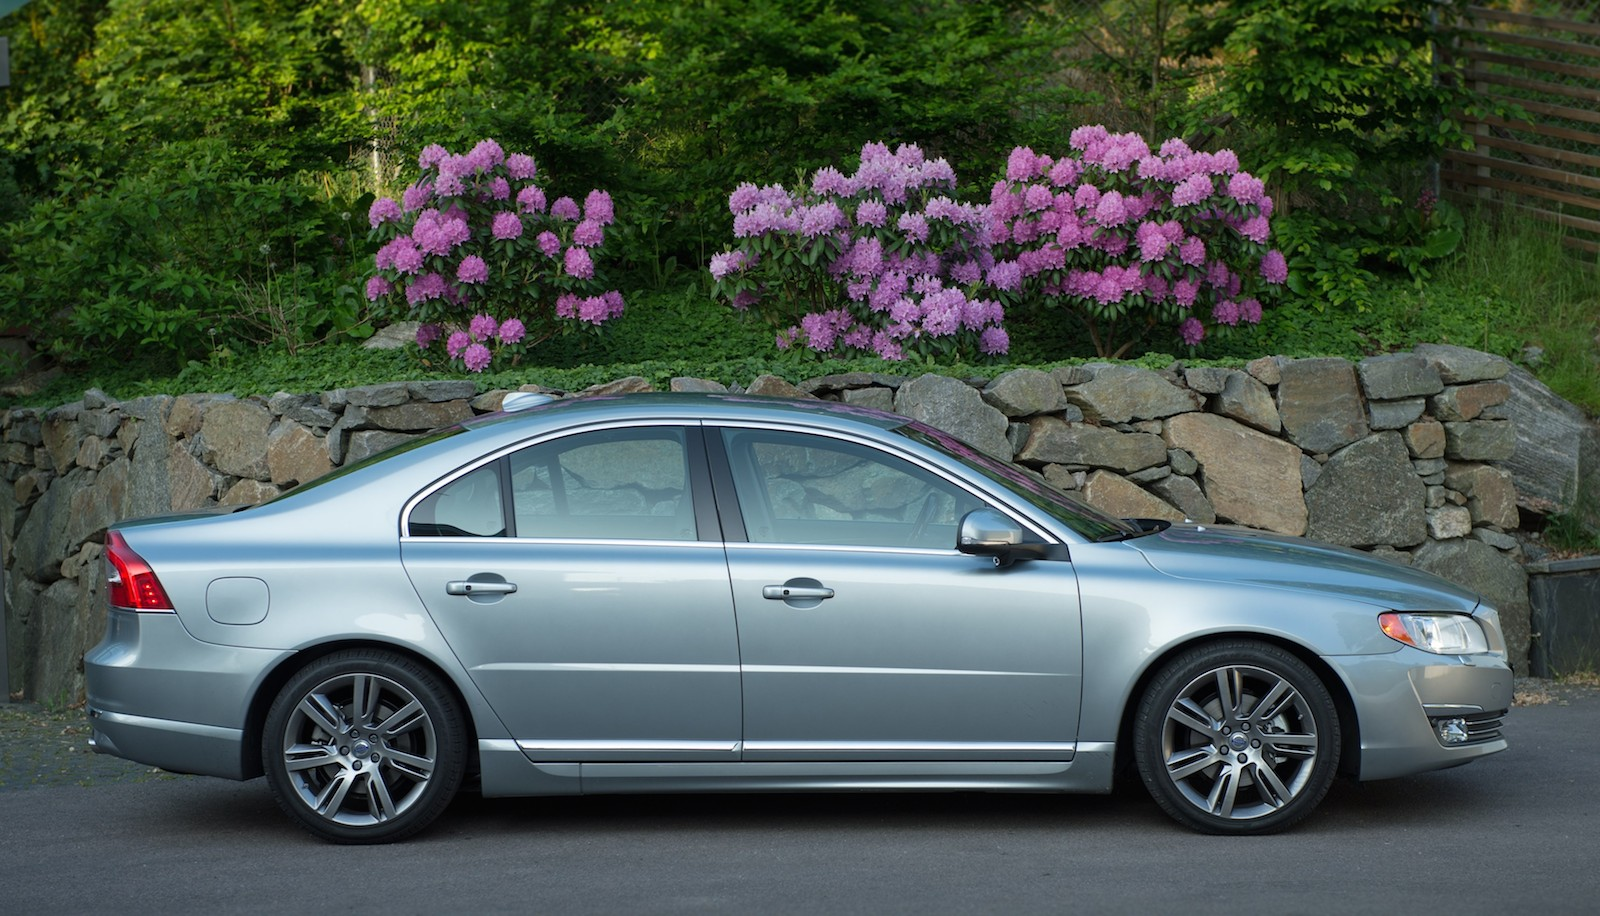 2016 Volvo S80 >> 2016 Volvo S80 Review Ratings Specs Prices And Photos